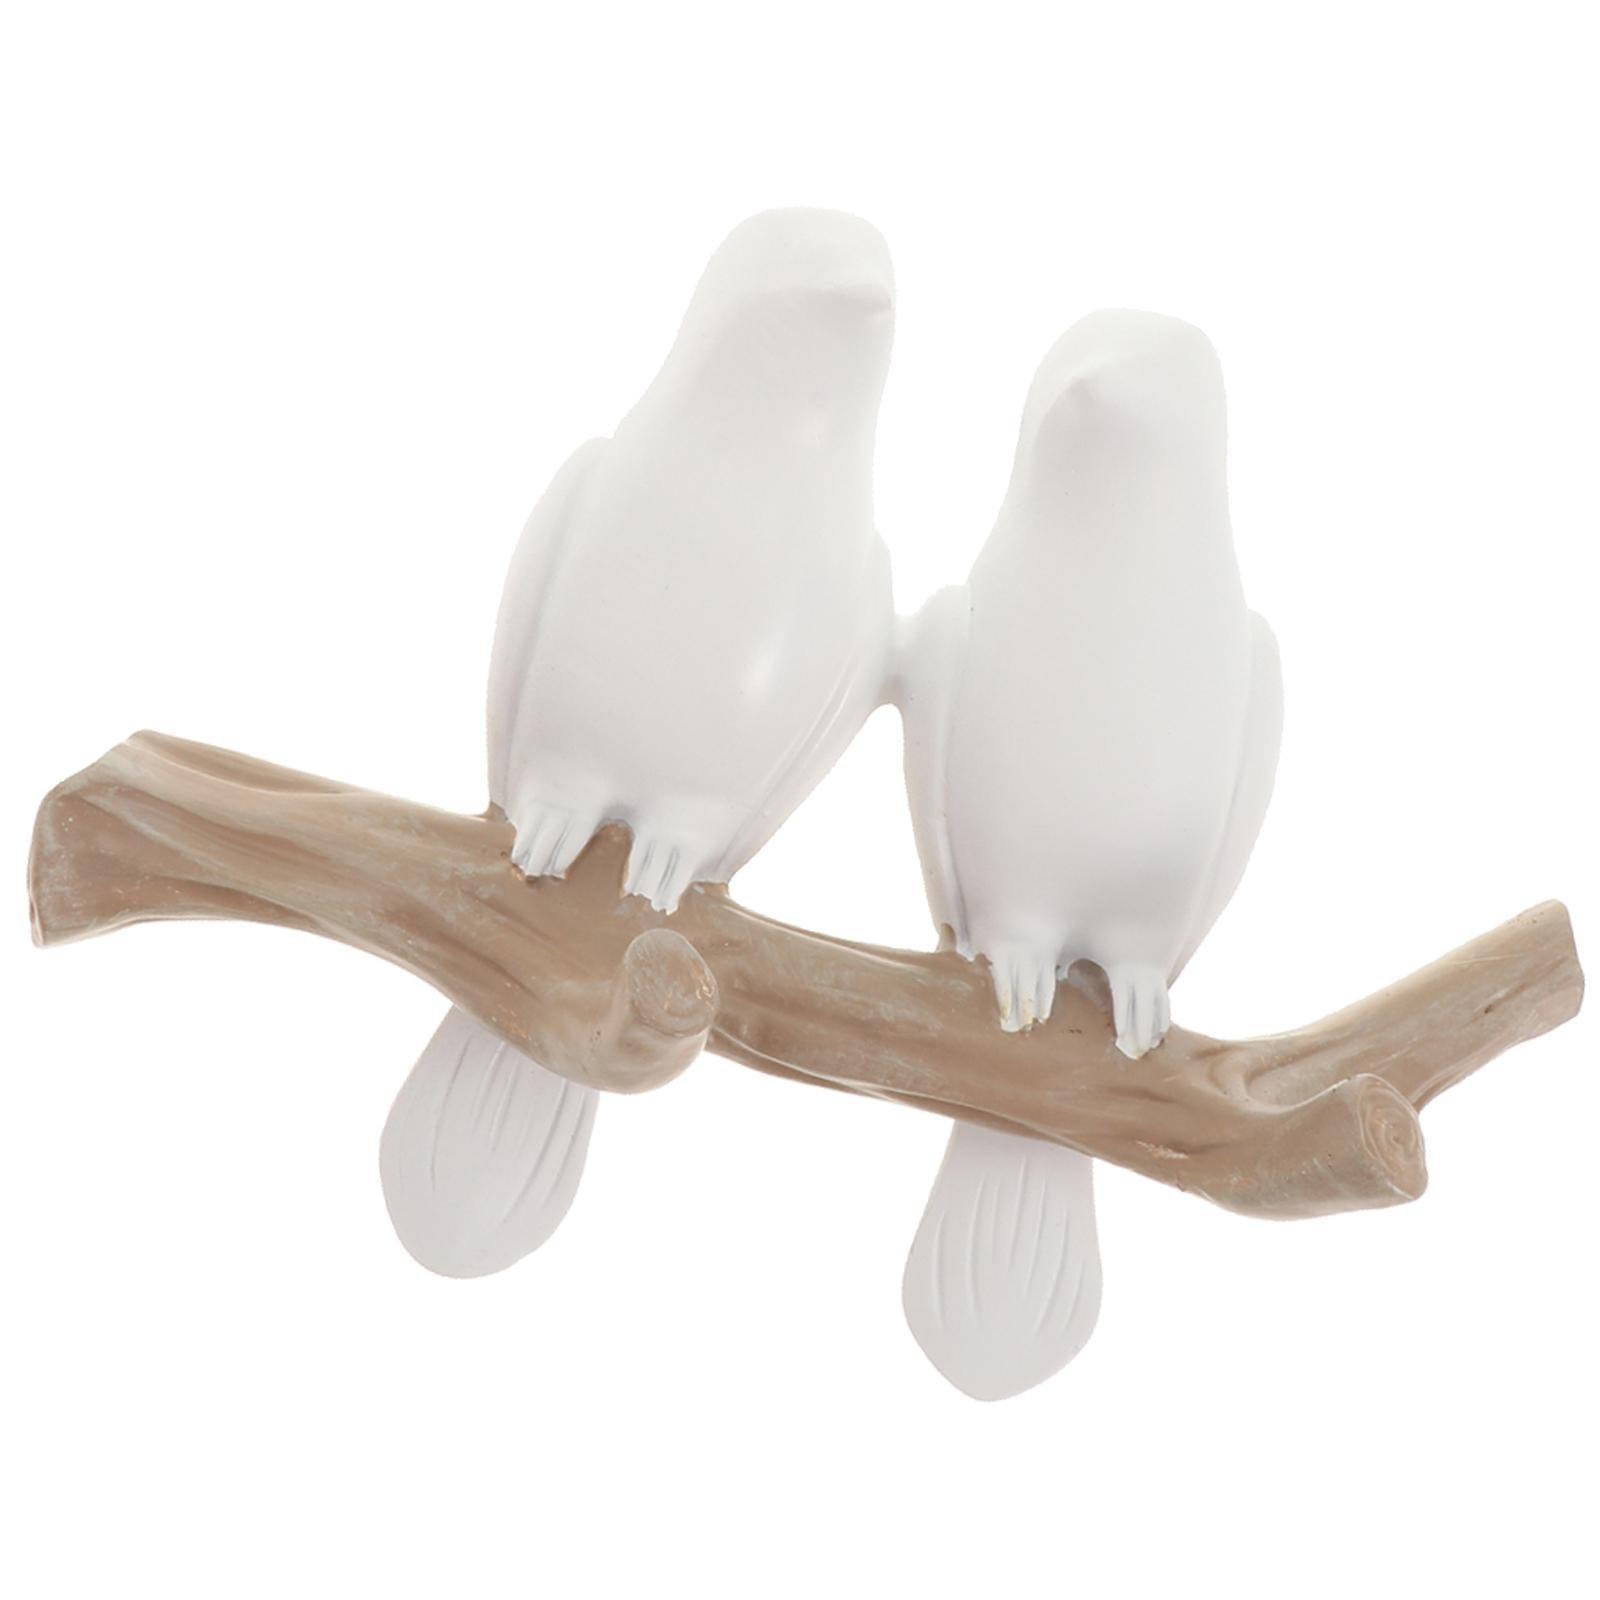 Resin Clothes Hat Bag Hanger Hook Wall Mounted Bird On Tree Branch Decor